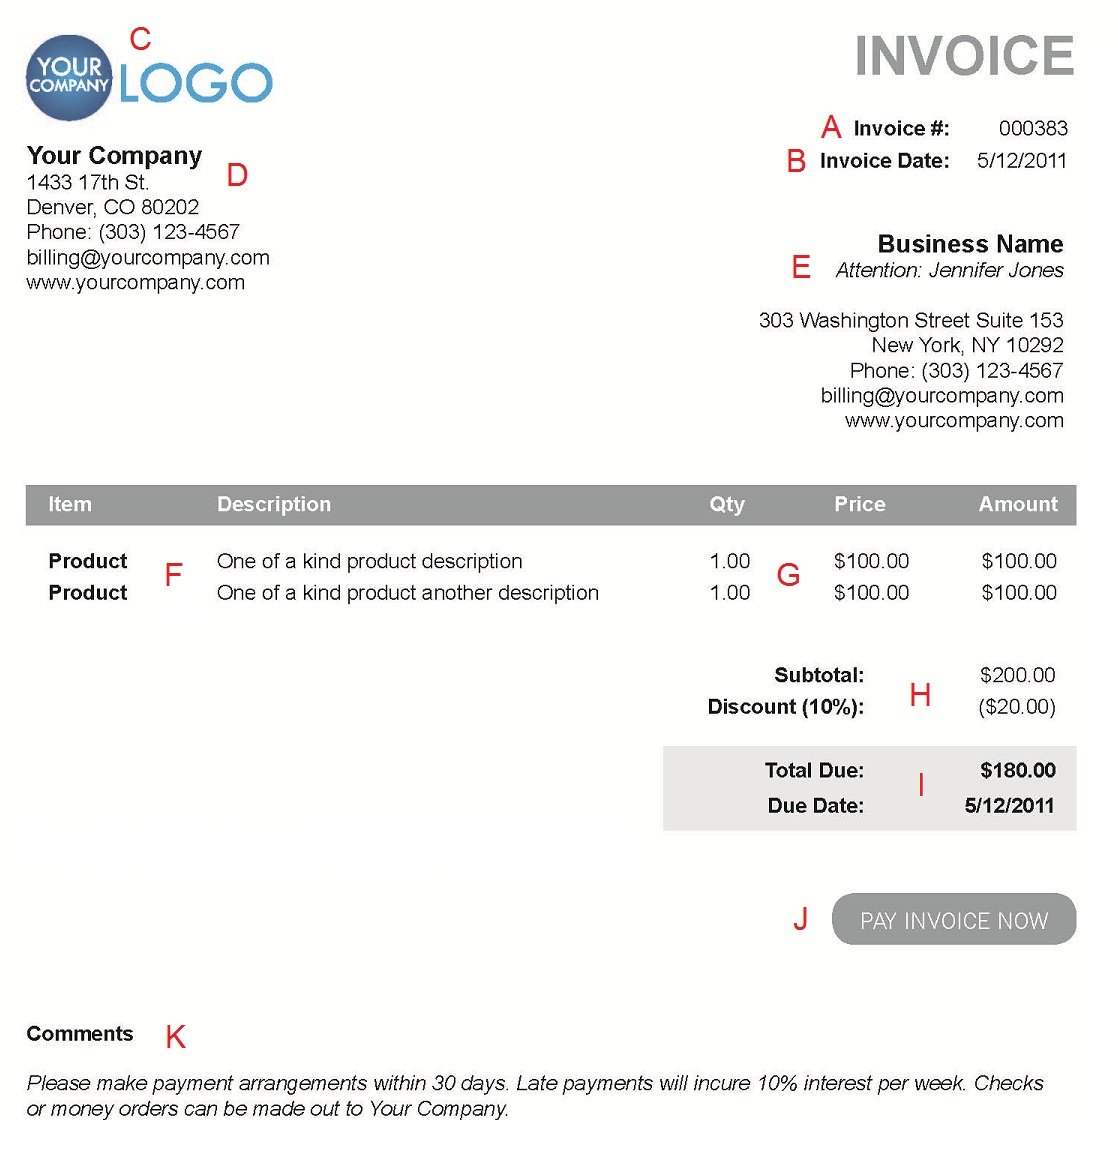 Hius  Wonderful The  Different Sections Of An Electronic Payment Invoice With Glamorous A  With Delectable Woocommerce Pdf Invoice Also Free Invoicing Software In Addition Invoice Price Car And How To Send Paypal Invoice As Well As Freelance Invoice Template Additionally Hvac Invoices From Paysimplecom With Hius  Glamorous The  Different Sections Of An Electronic Payment Invoice With Delectable A  And Wonderful Woocommerce Pdf Invoice Also Free Invoicing Software In Addition Invoice Price Car From Paysimplecom